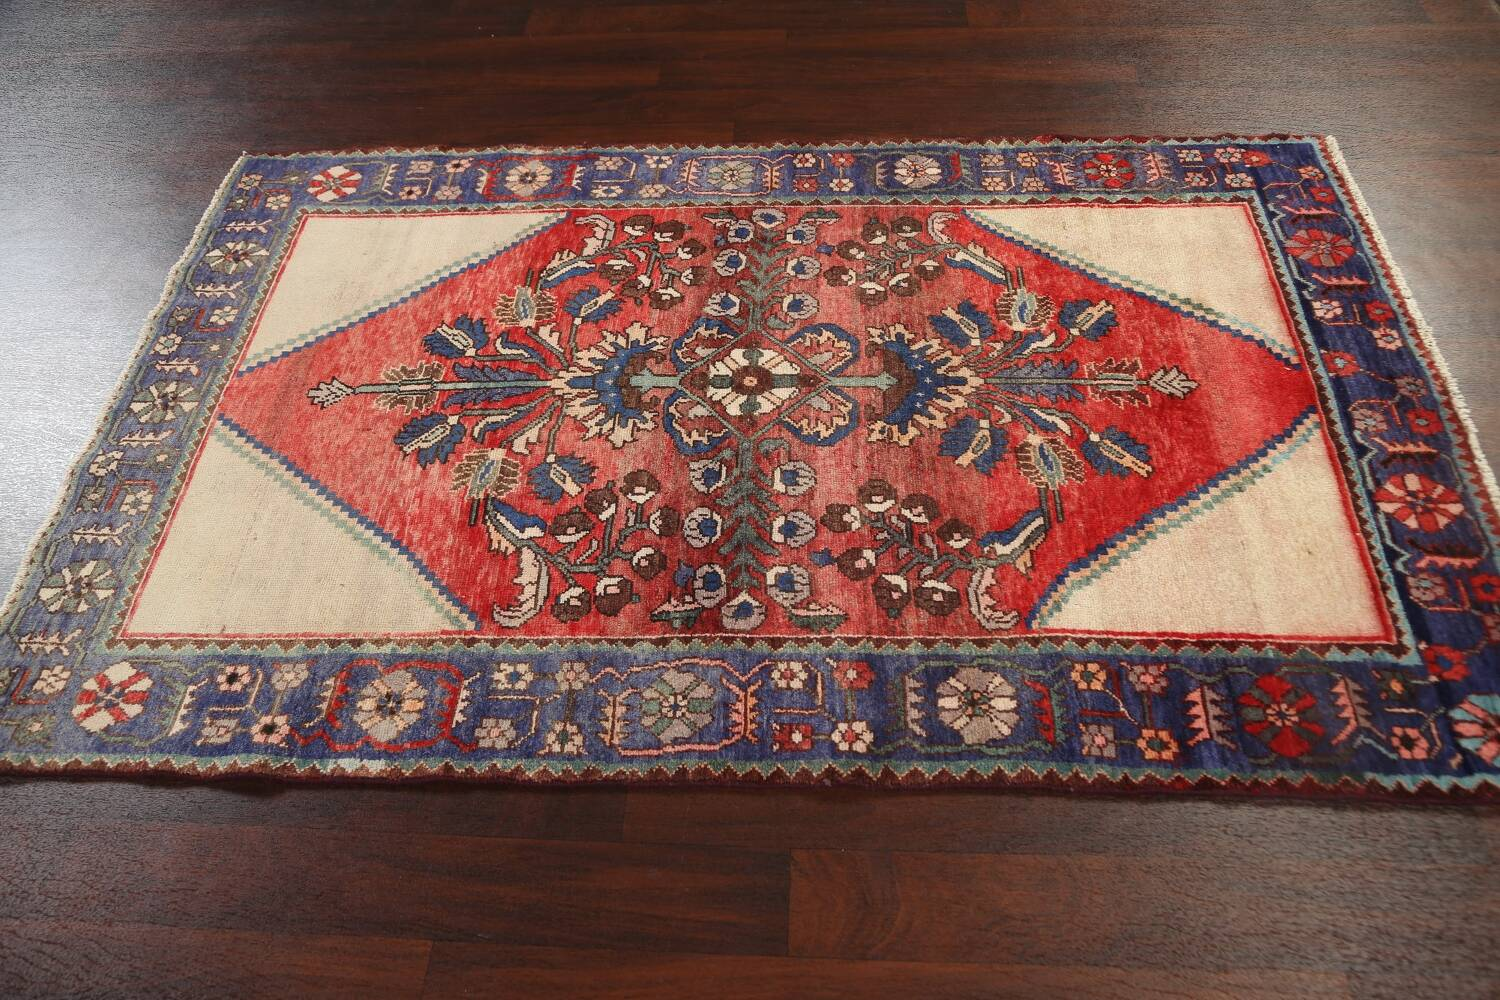 Antique Floral Malayer Persian Area Rug 4x7 image 16